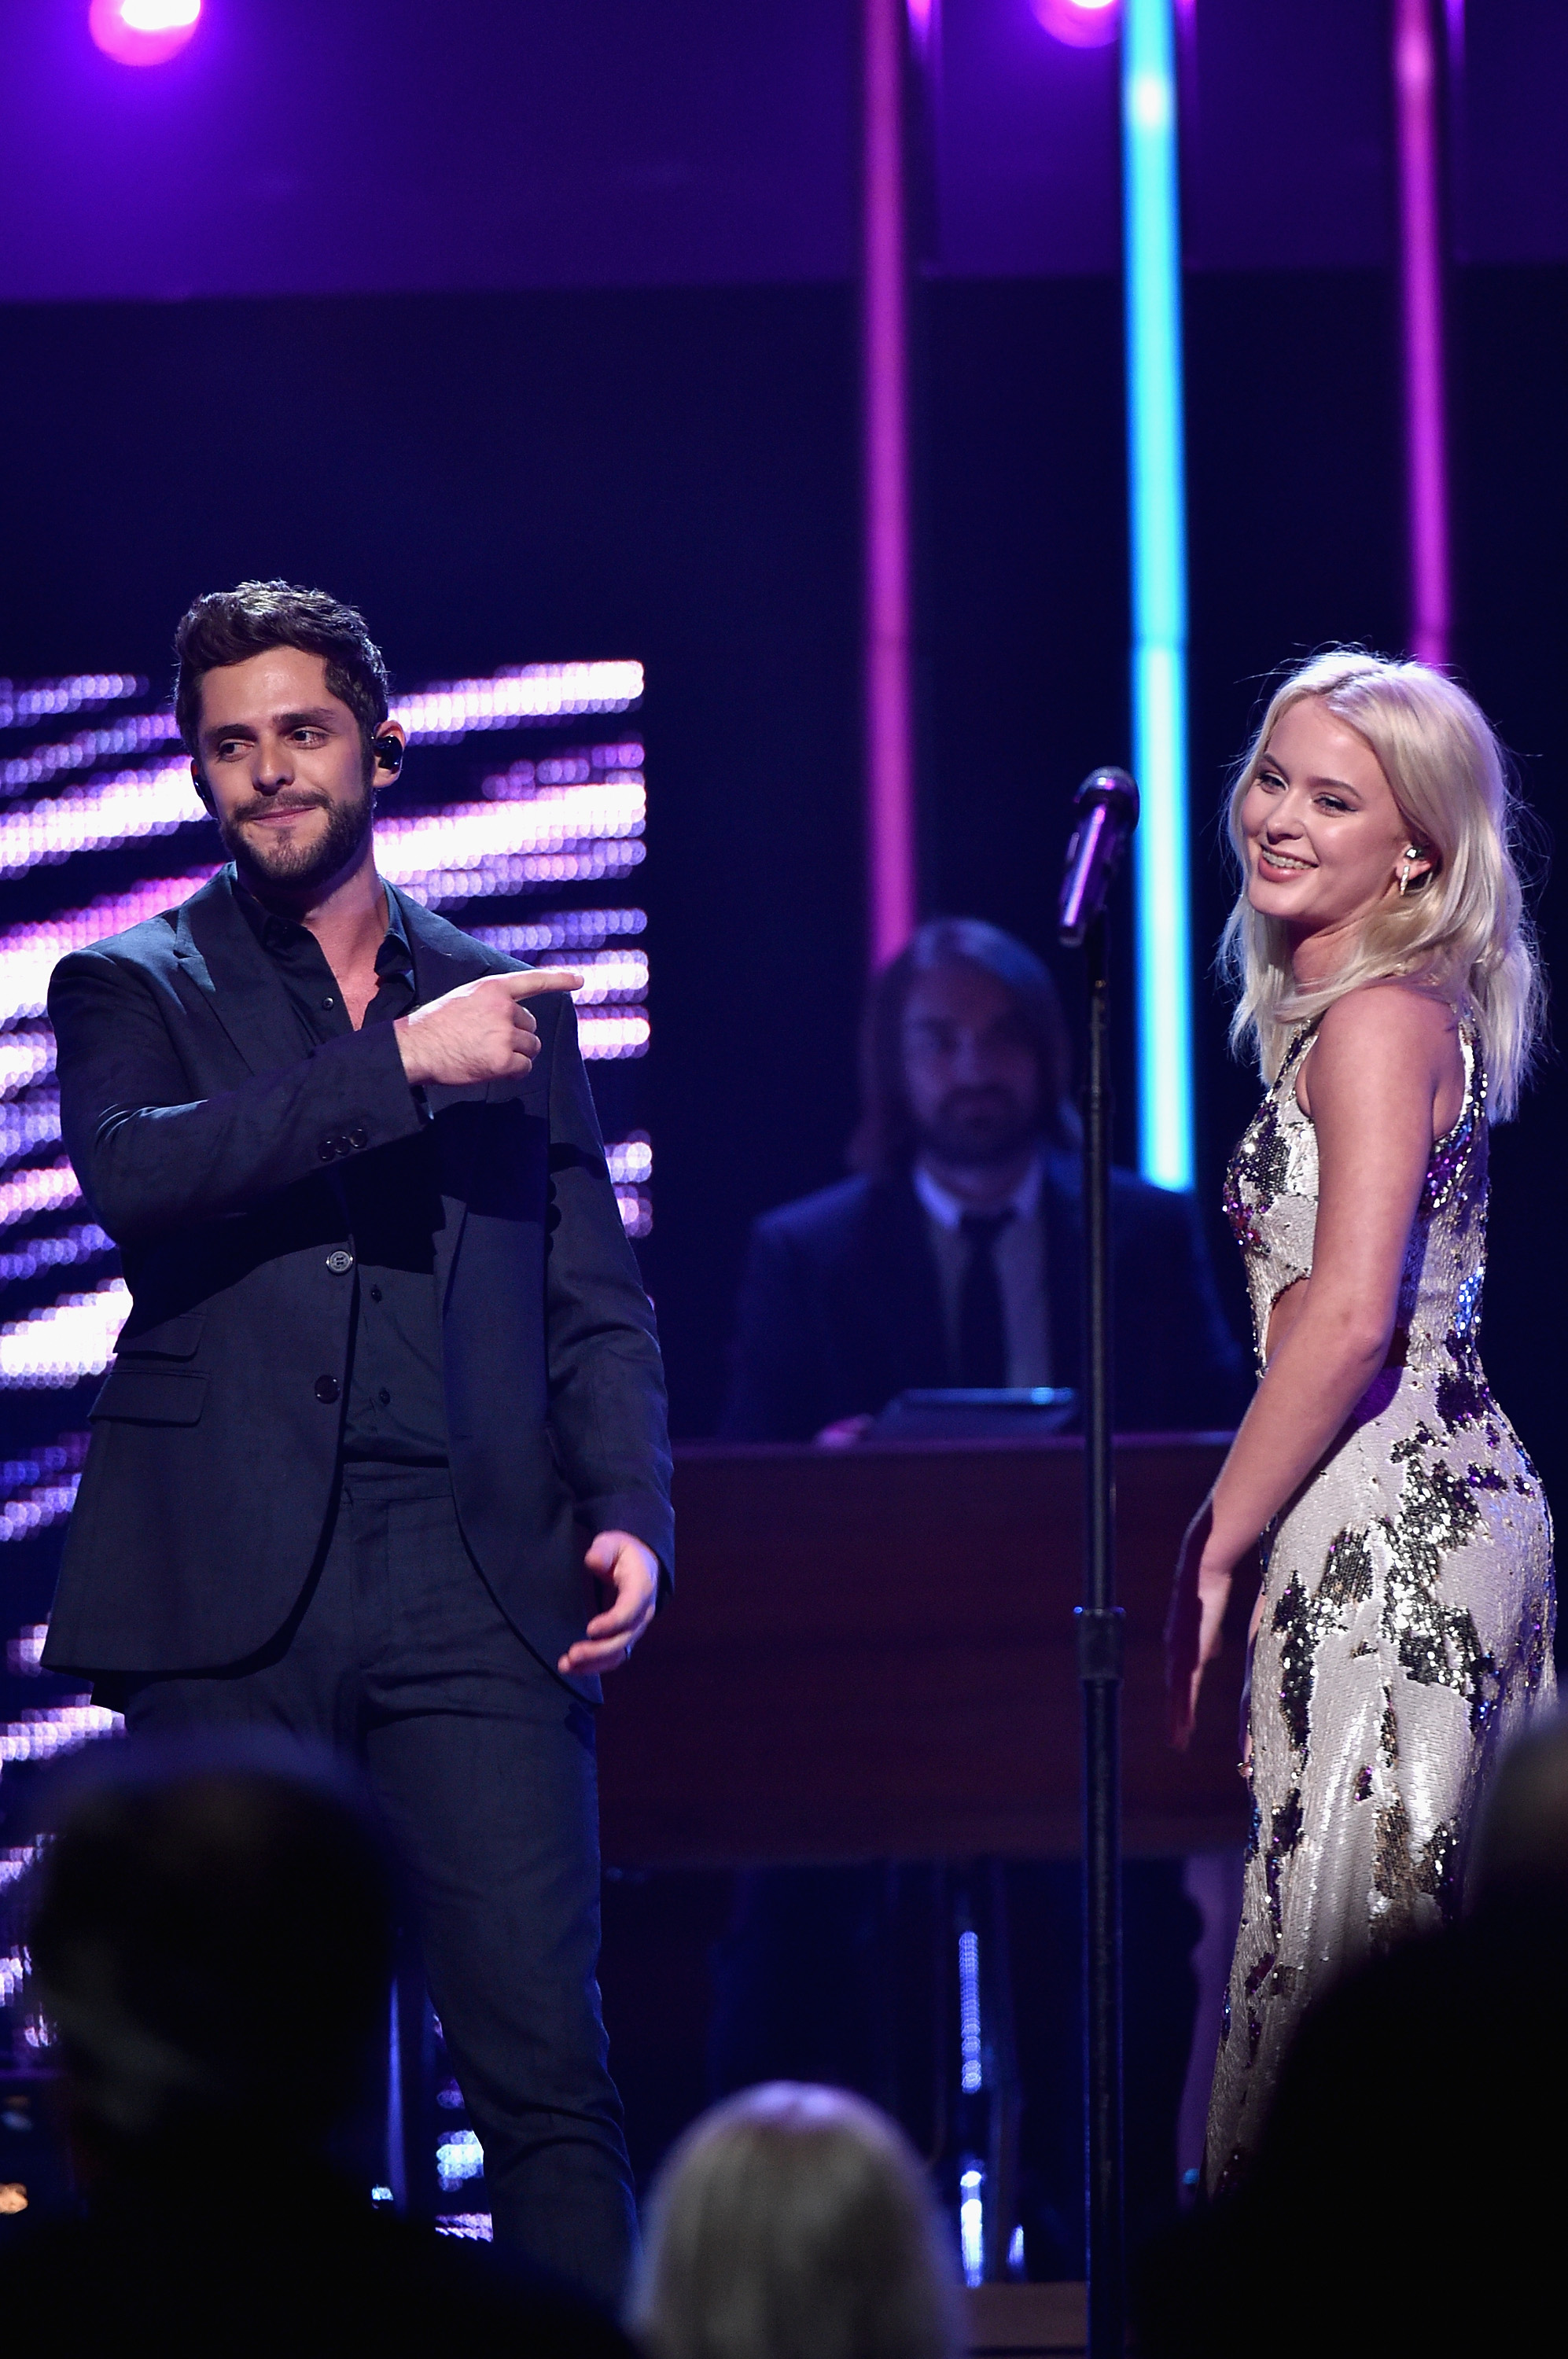 Photo by John Shearer/Getty Images for CMT